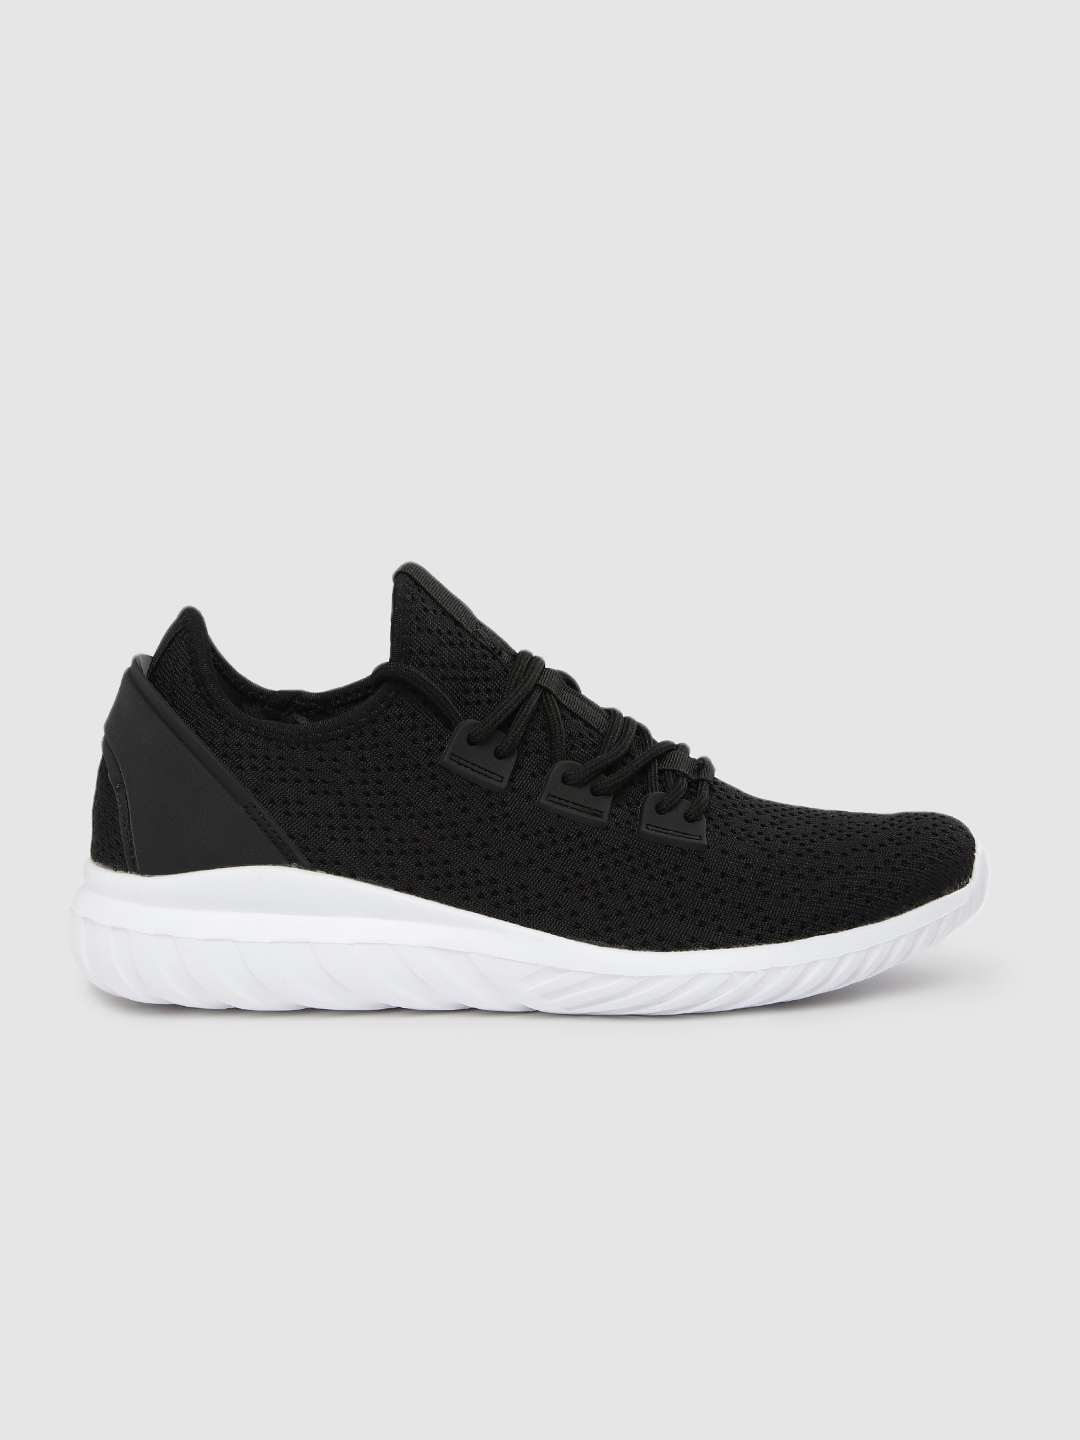 HRX by Hrithik Roshan Men Black Knit Run 1.0  Running Shoe